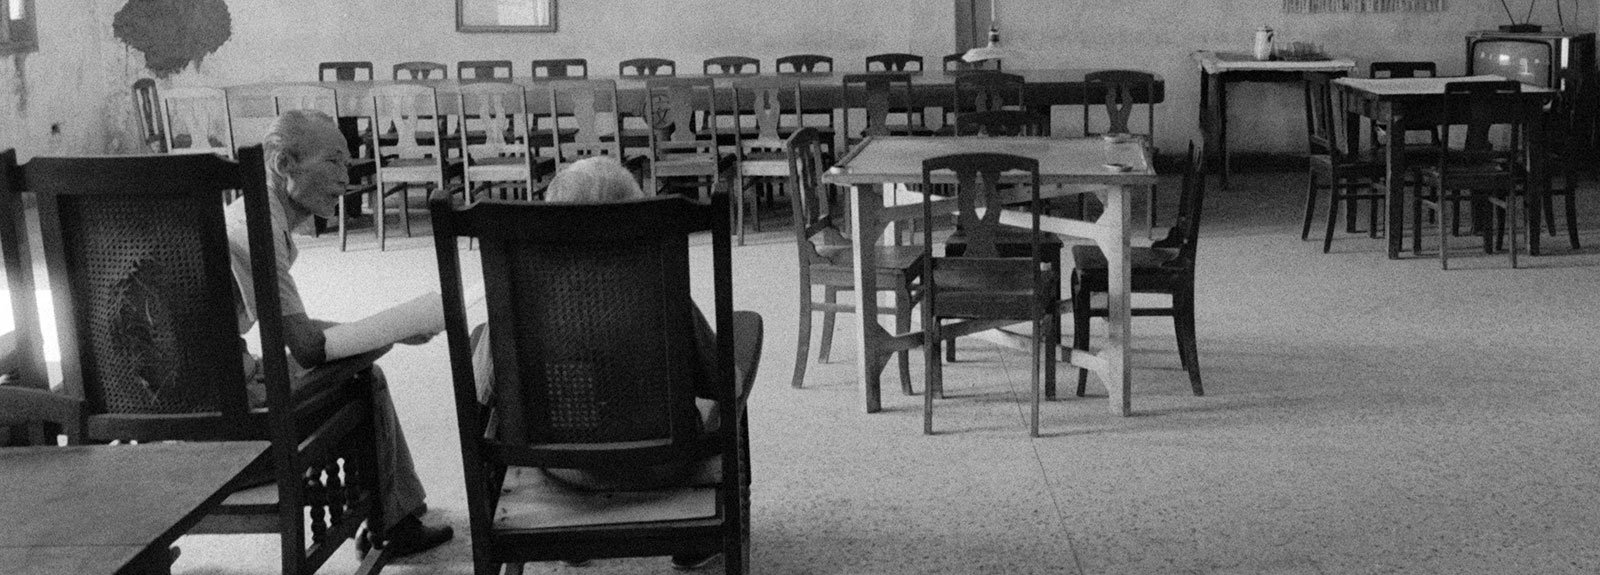 Room with chairs and people seat, black and white picture